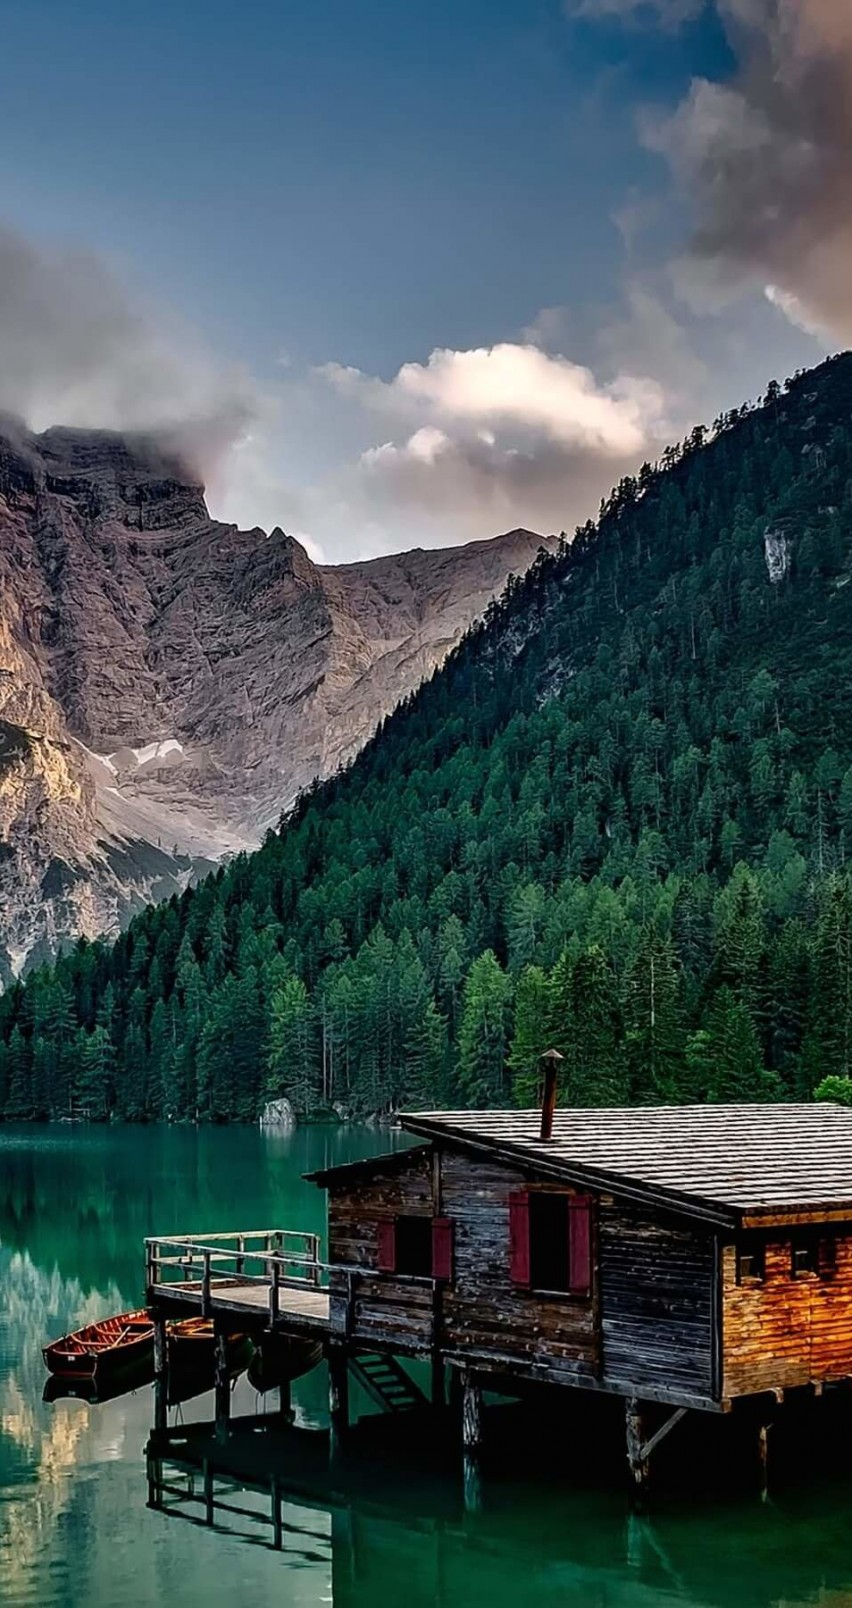 Lake Prags - Italy Wallpaper for Apple iPhone 6 / 6s